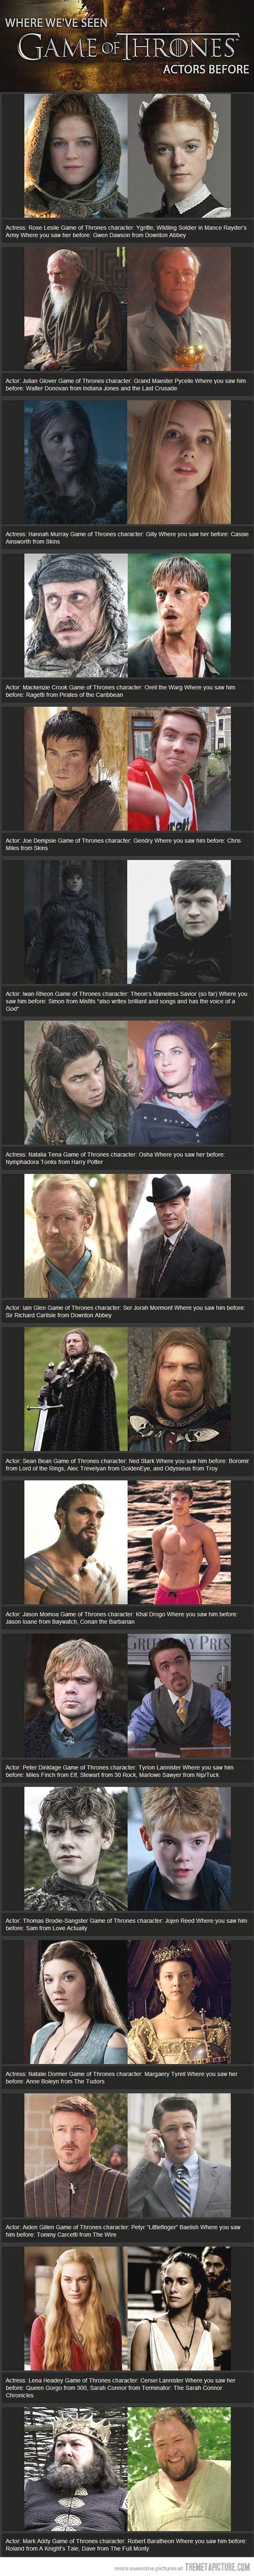 #Game of Thrones characters: Where Have We Seen You Before?…